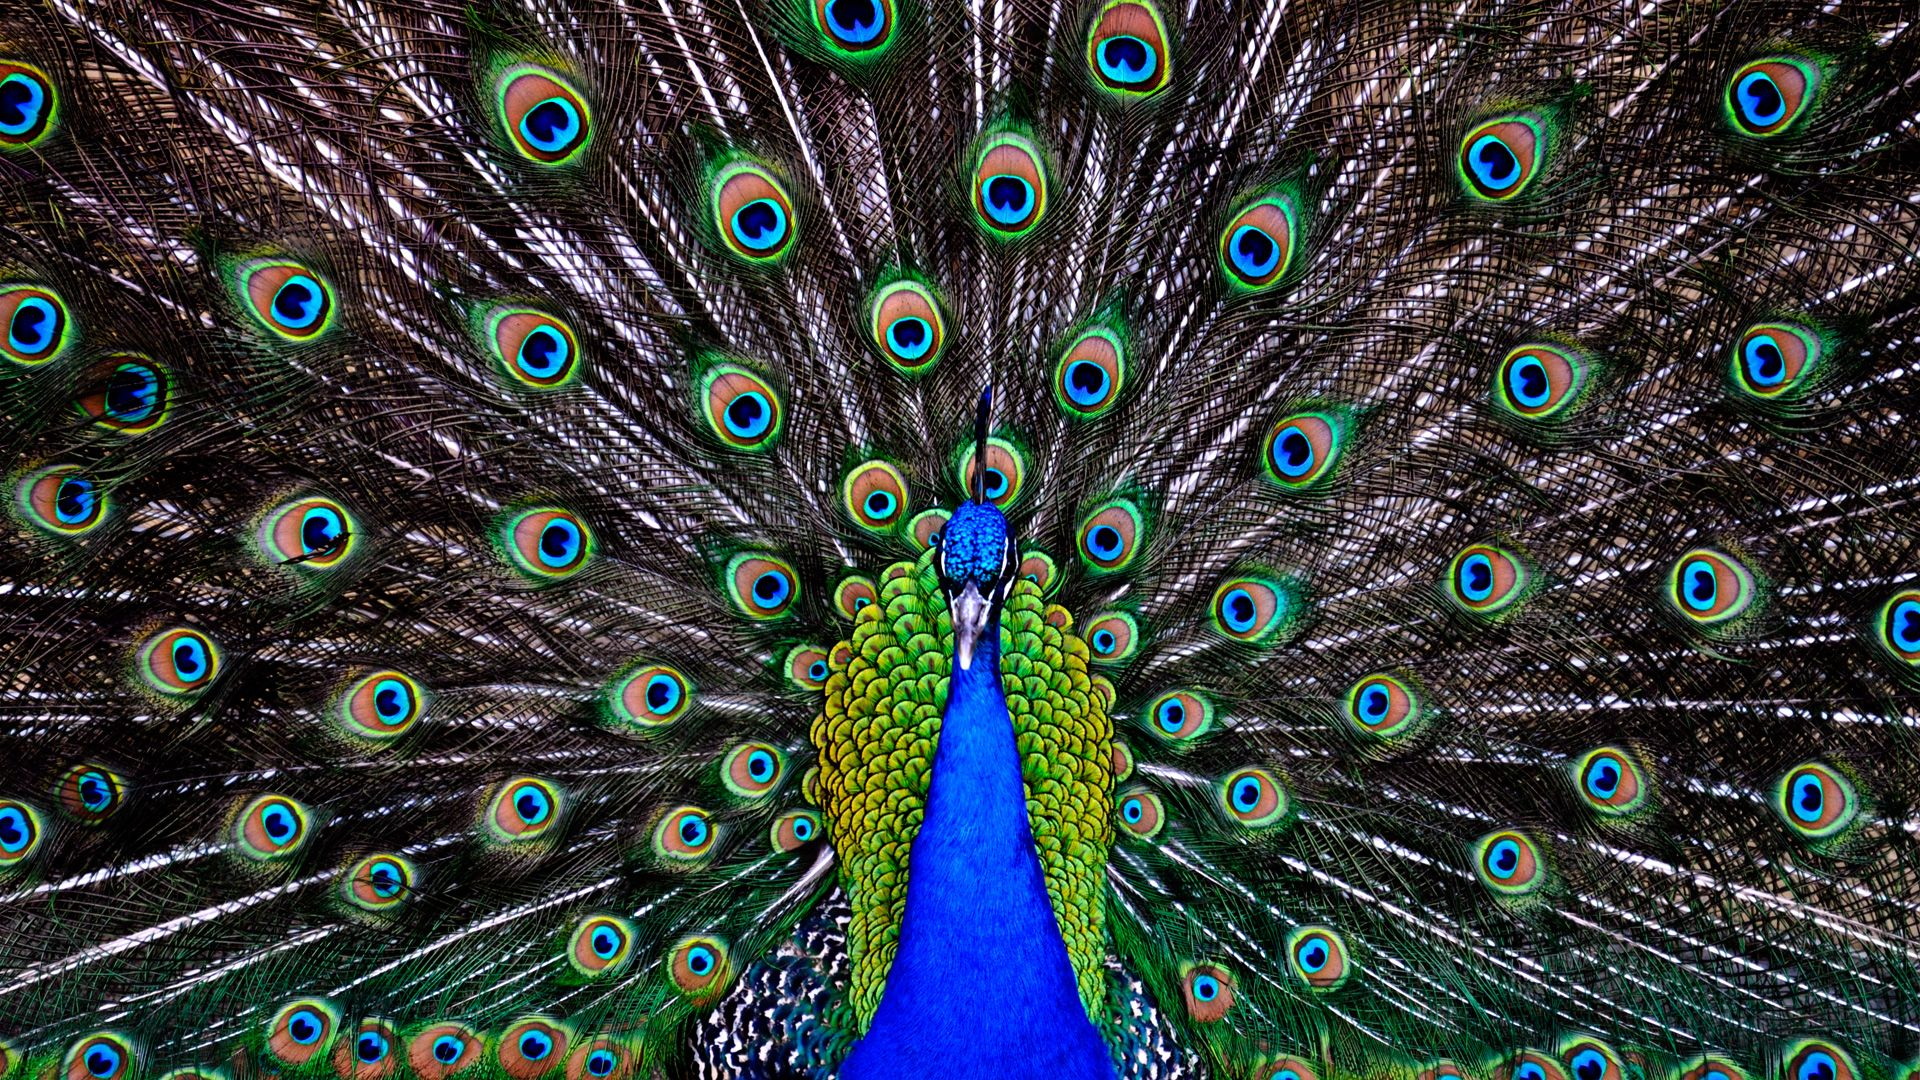 peacock beautiful hd wallpaper free download | mother earth